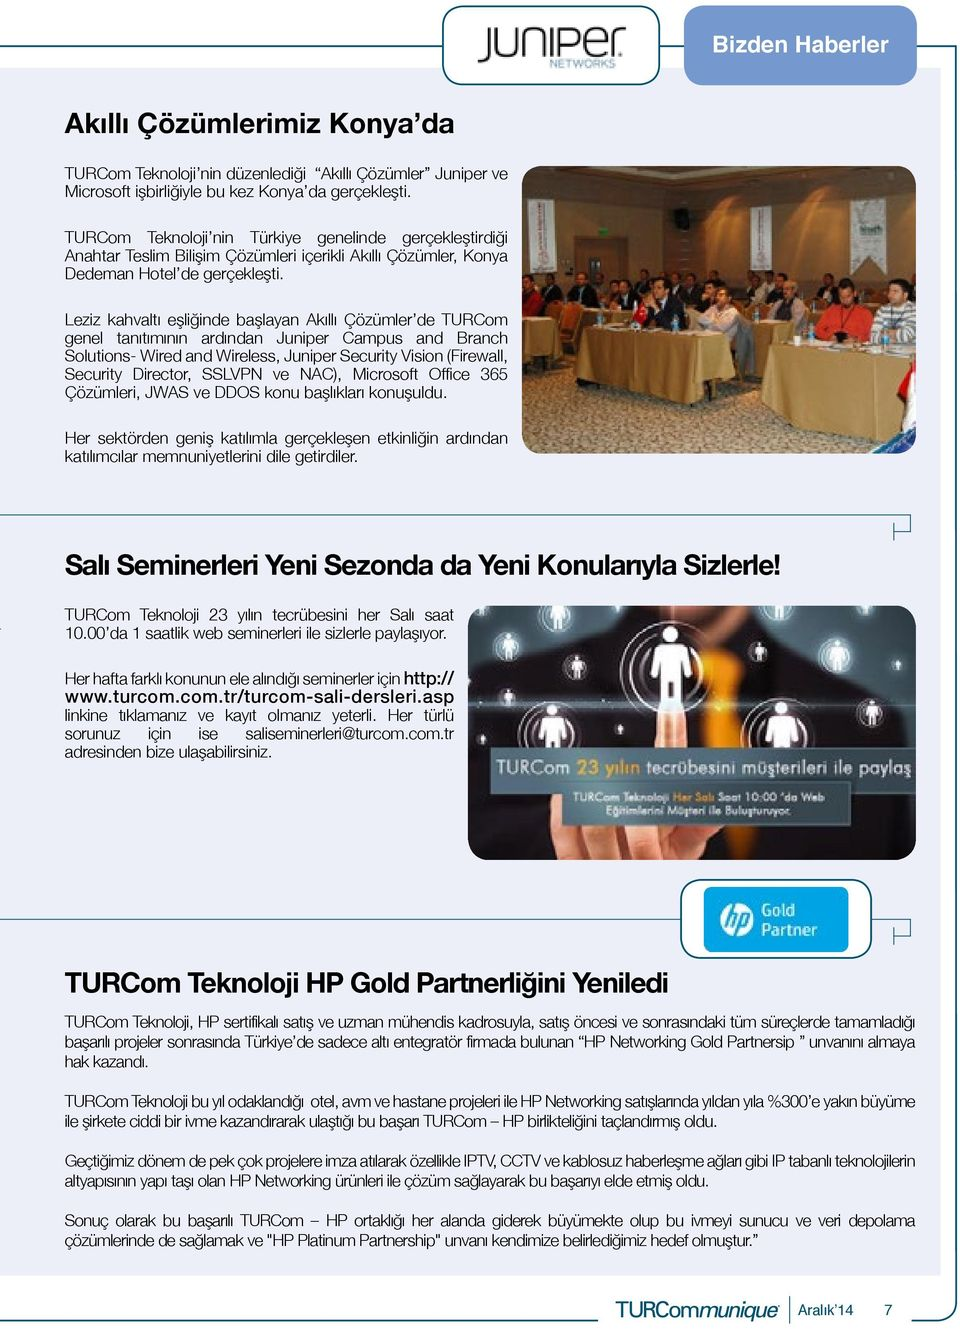 Leziz kahvaltı eşliğinde başlayan Akıllı Çözümler de TURCom genel tanıtımının ardından Juniper Campus and Branch Solutions- Wired and Wireless, Juniper Security Vision (Firewall, Security Director,